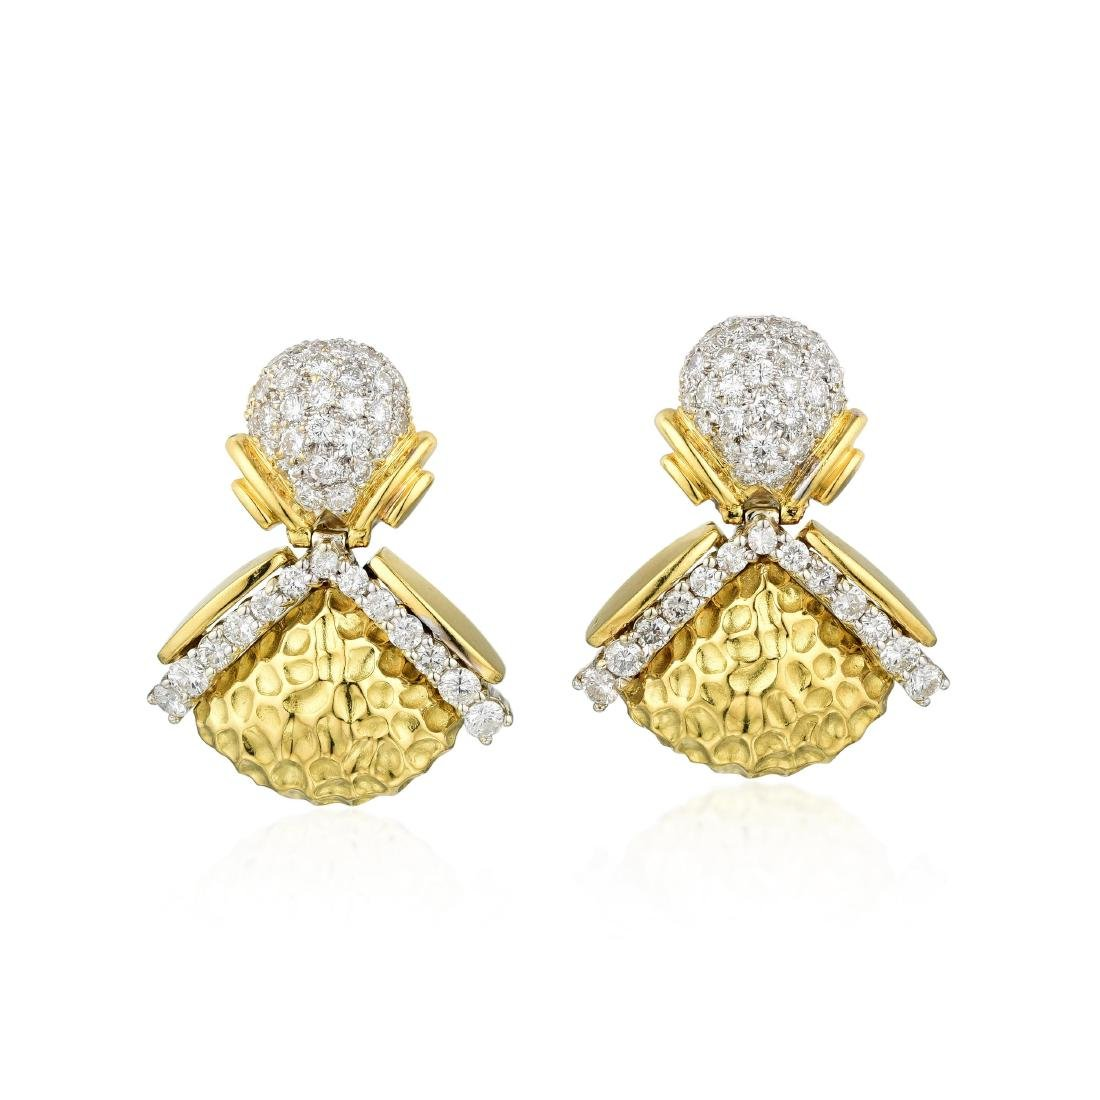 A Pair of Diamond Dangle Earrings